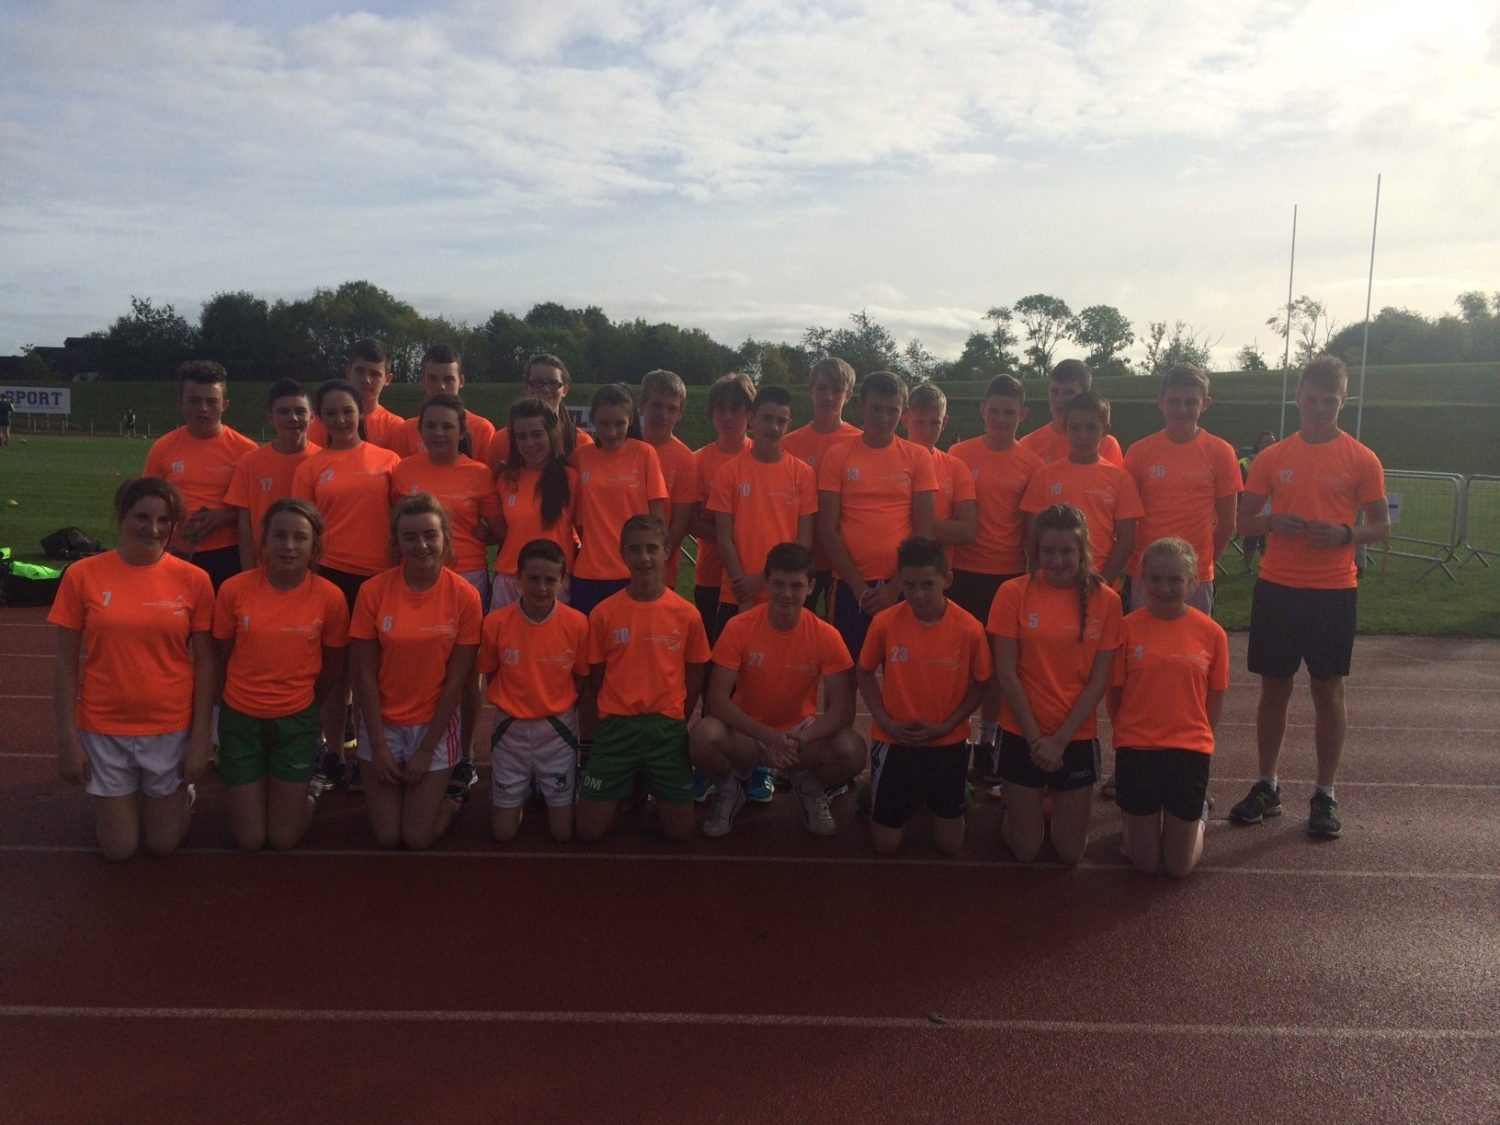 Desmond College Students complete the Marathon Challenge in the University of Limerick 2014